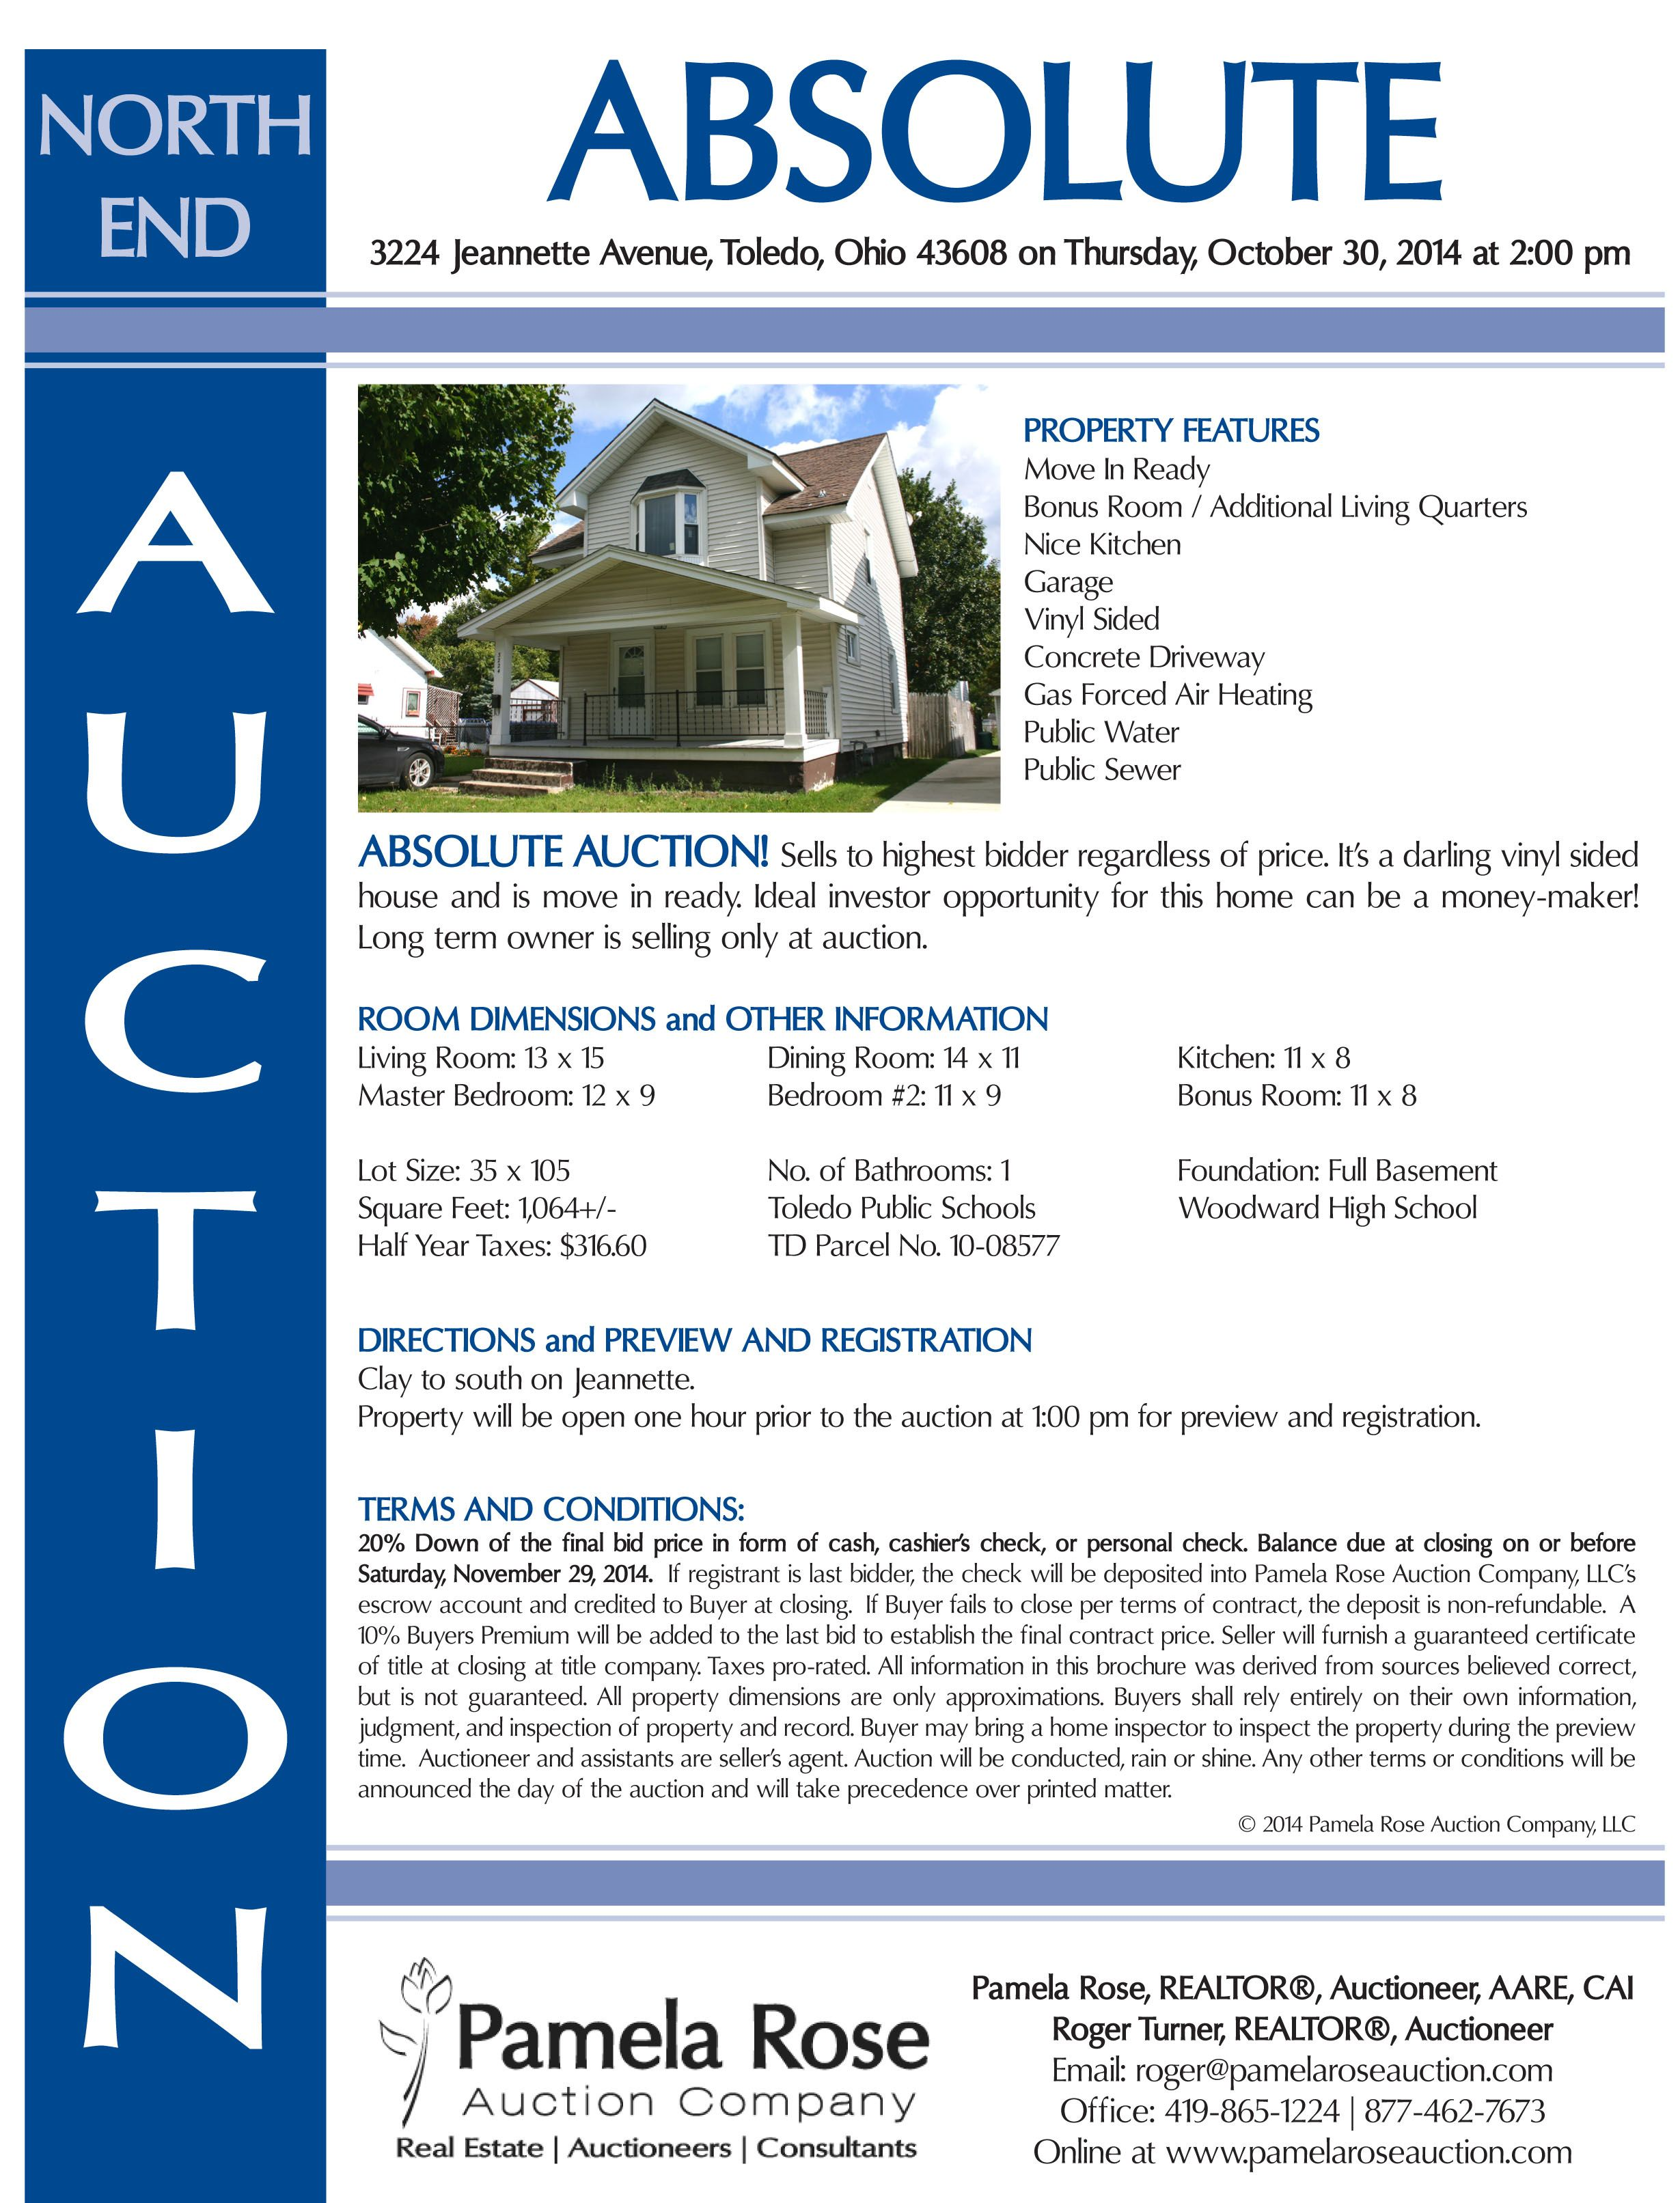 Absolute Auction in North Toledo at 3224 Avenue